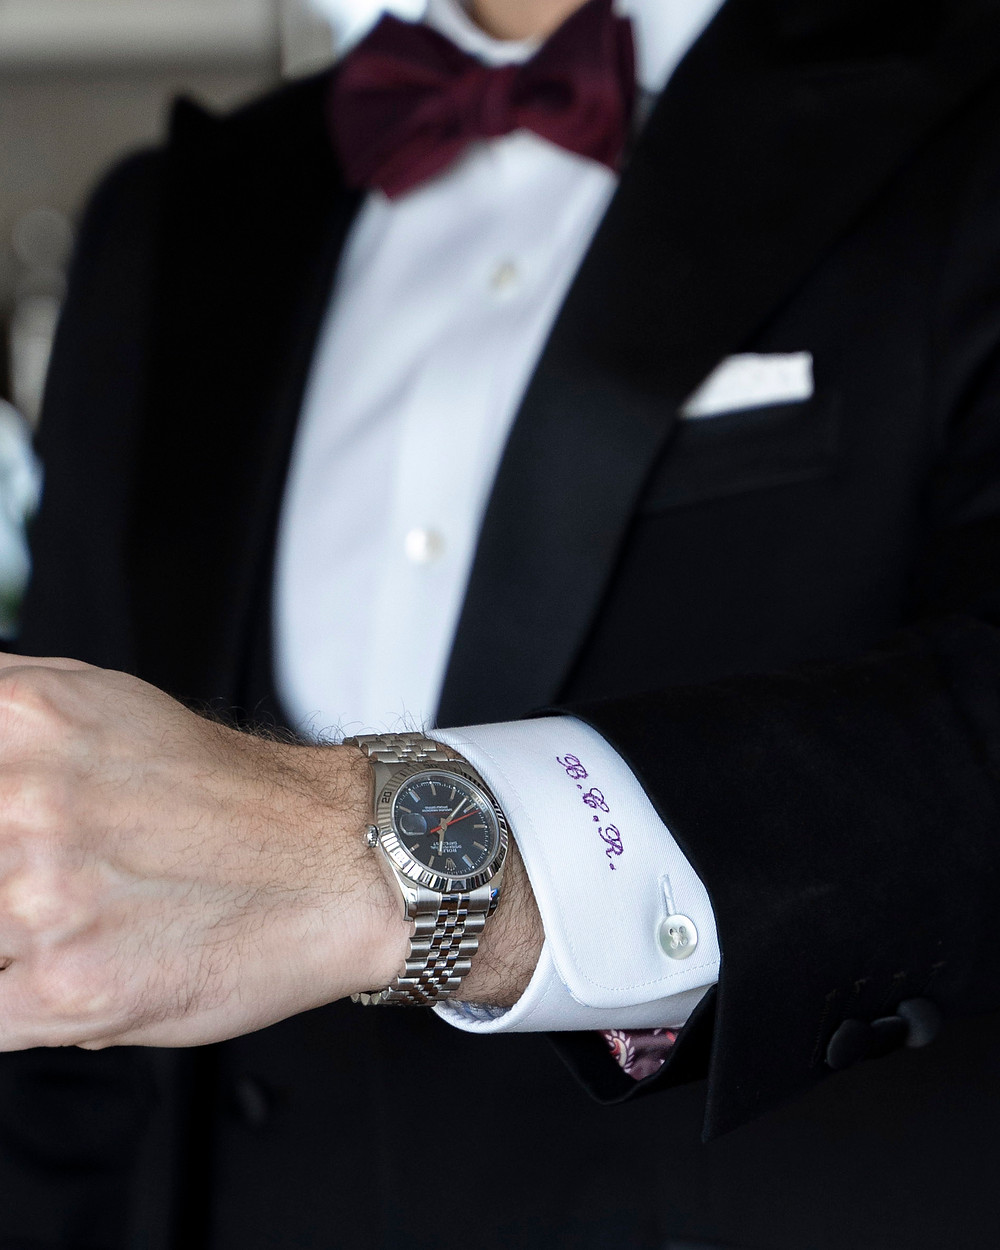 Black tie styling of the Rolex 116264 turn o graph